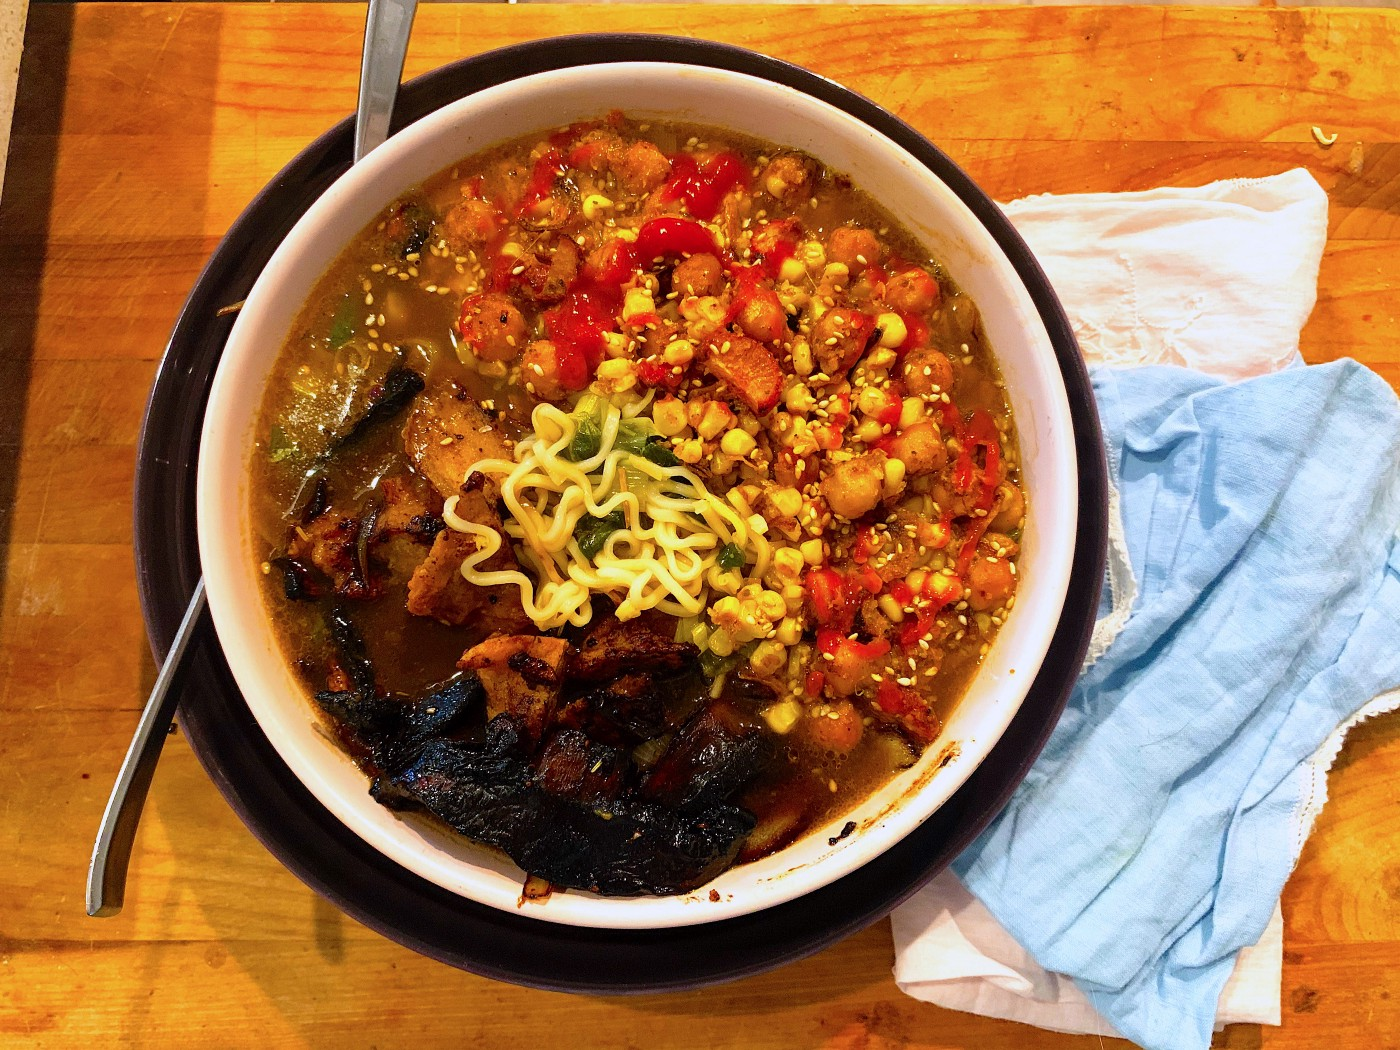 vegetable ramen noodle bowl with chickpeas, blackened mushrooms, and noodles peeking out from the broth